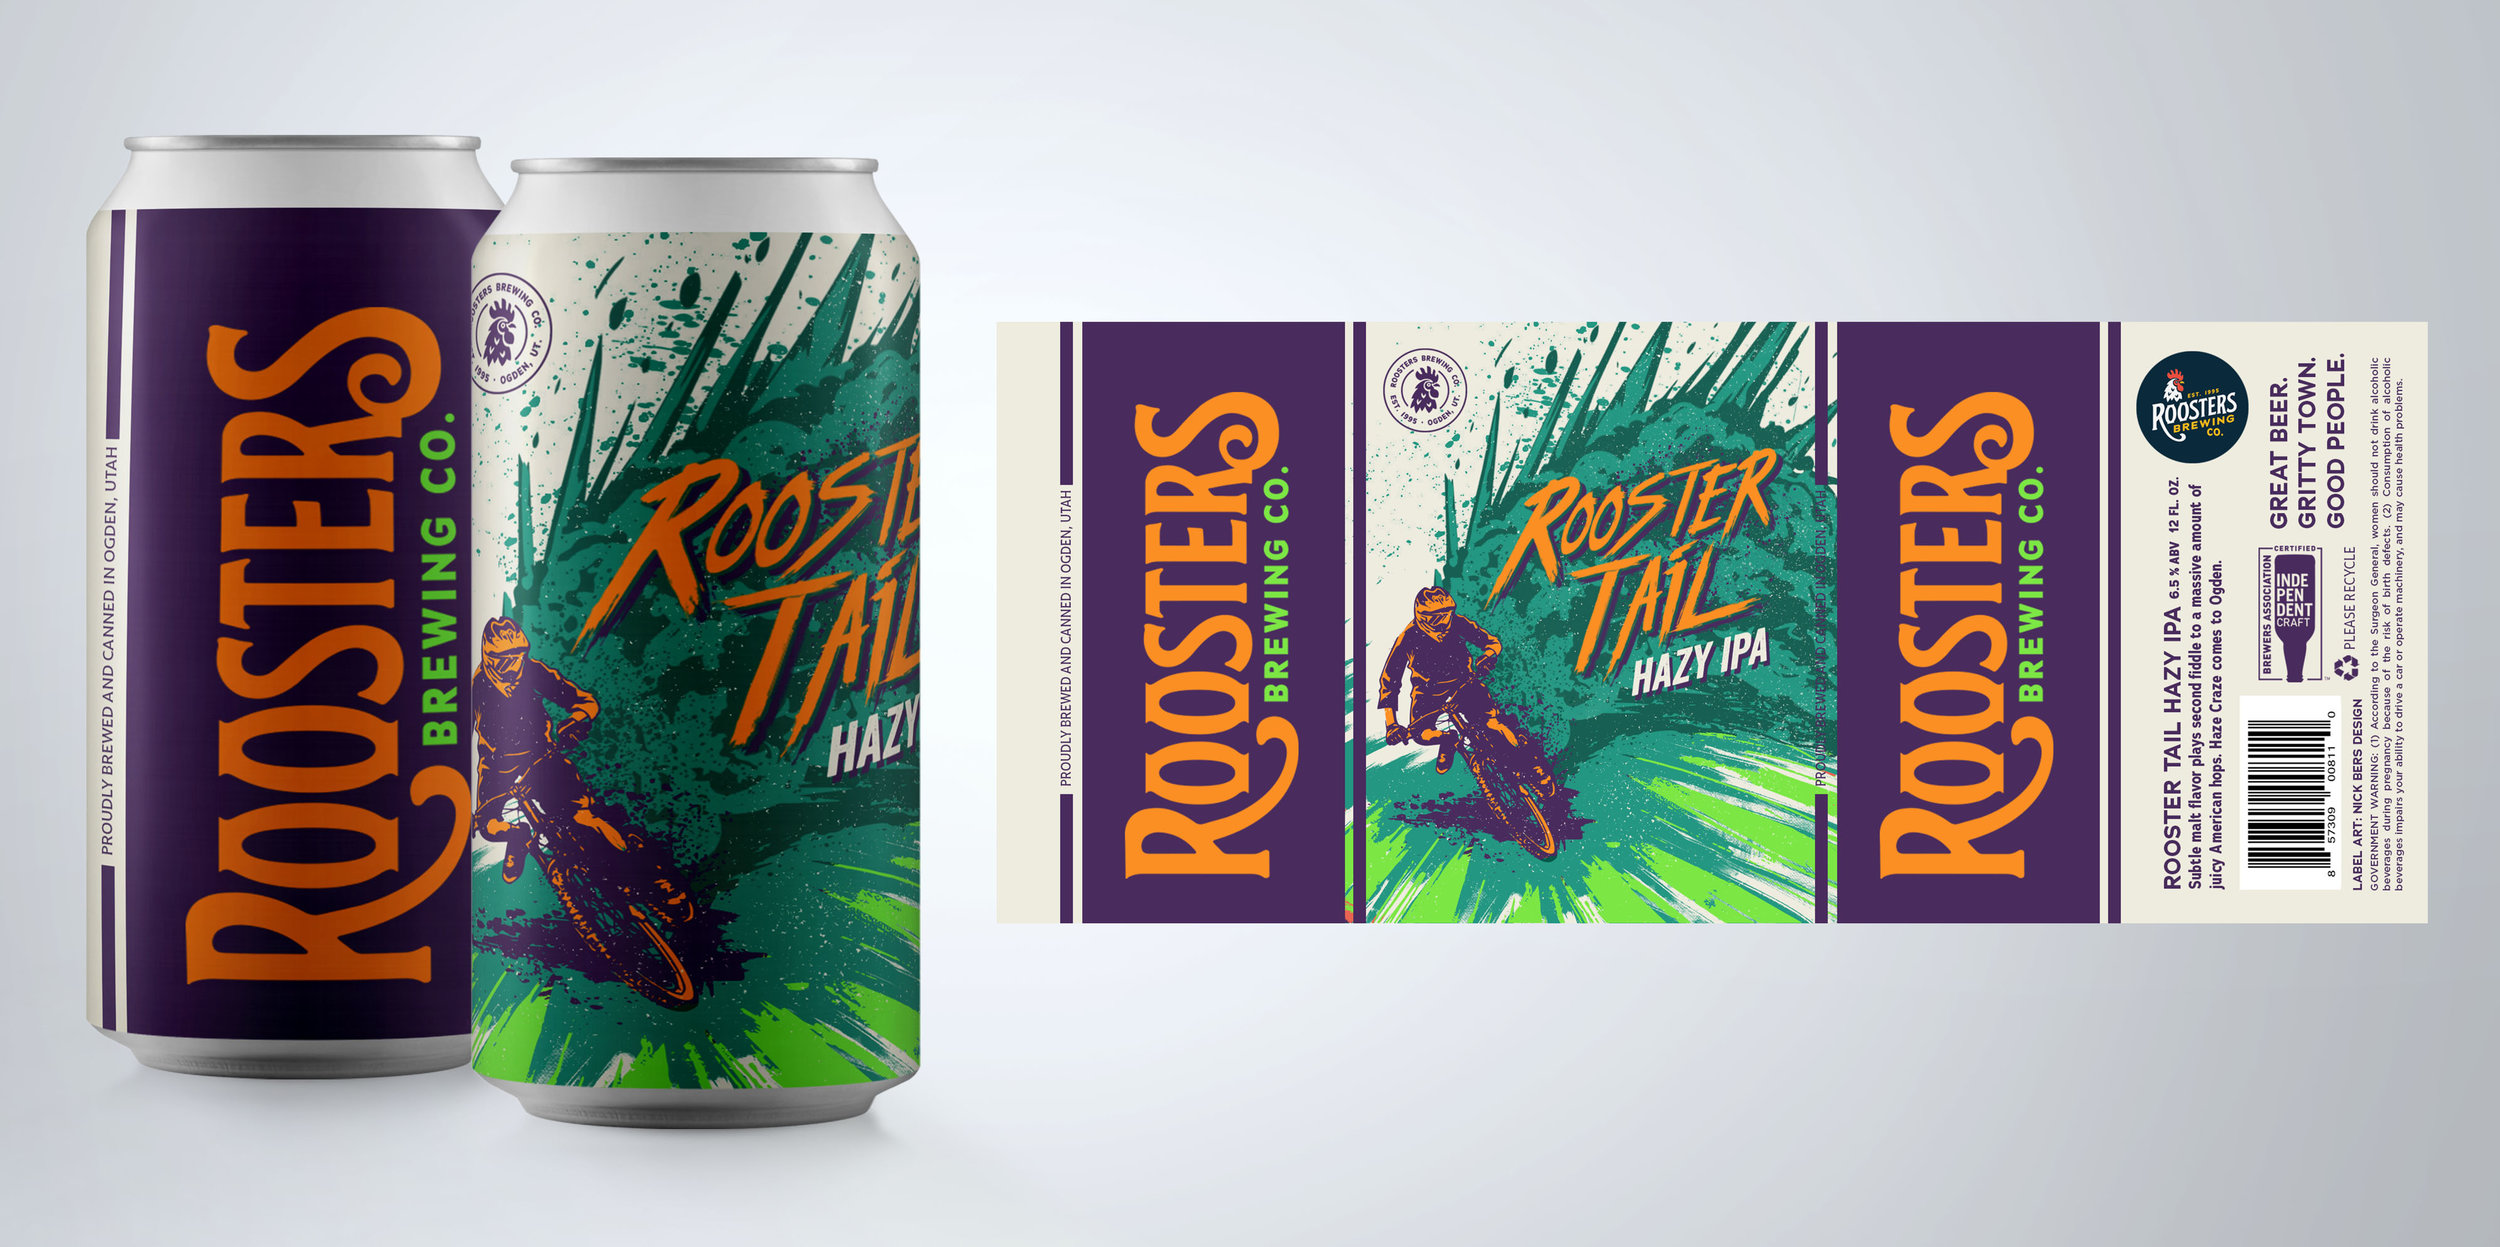 RoosterTail2cans.jpg